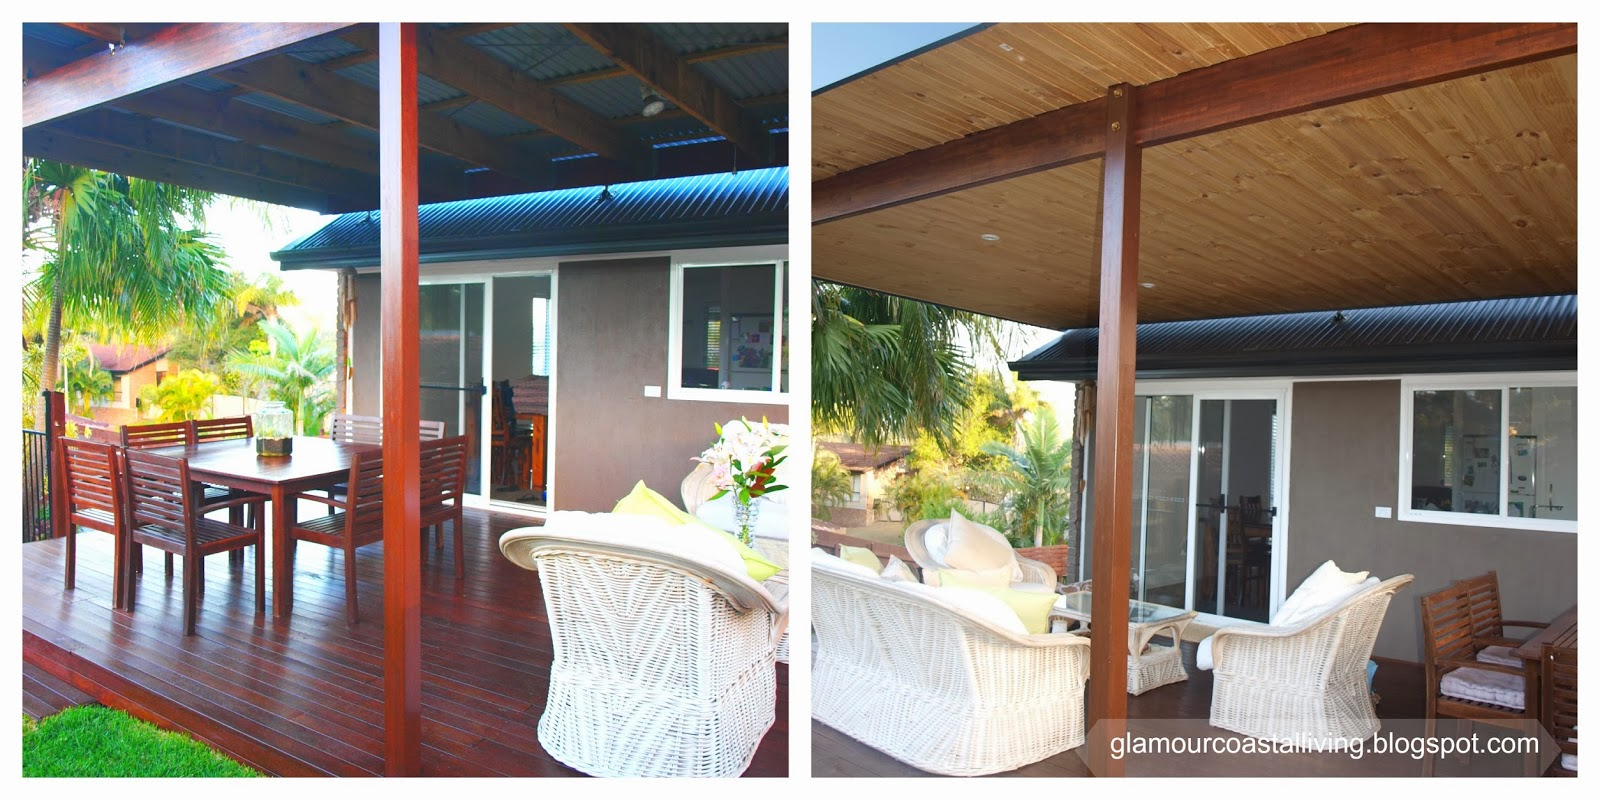 Wooden Cladding Before And After ~ Glamour coastal living after photos of the backyard